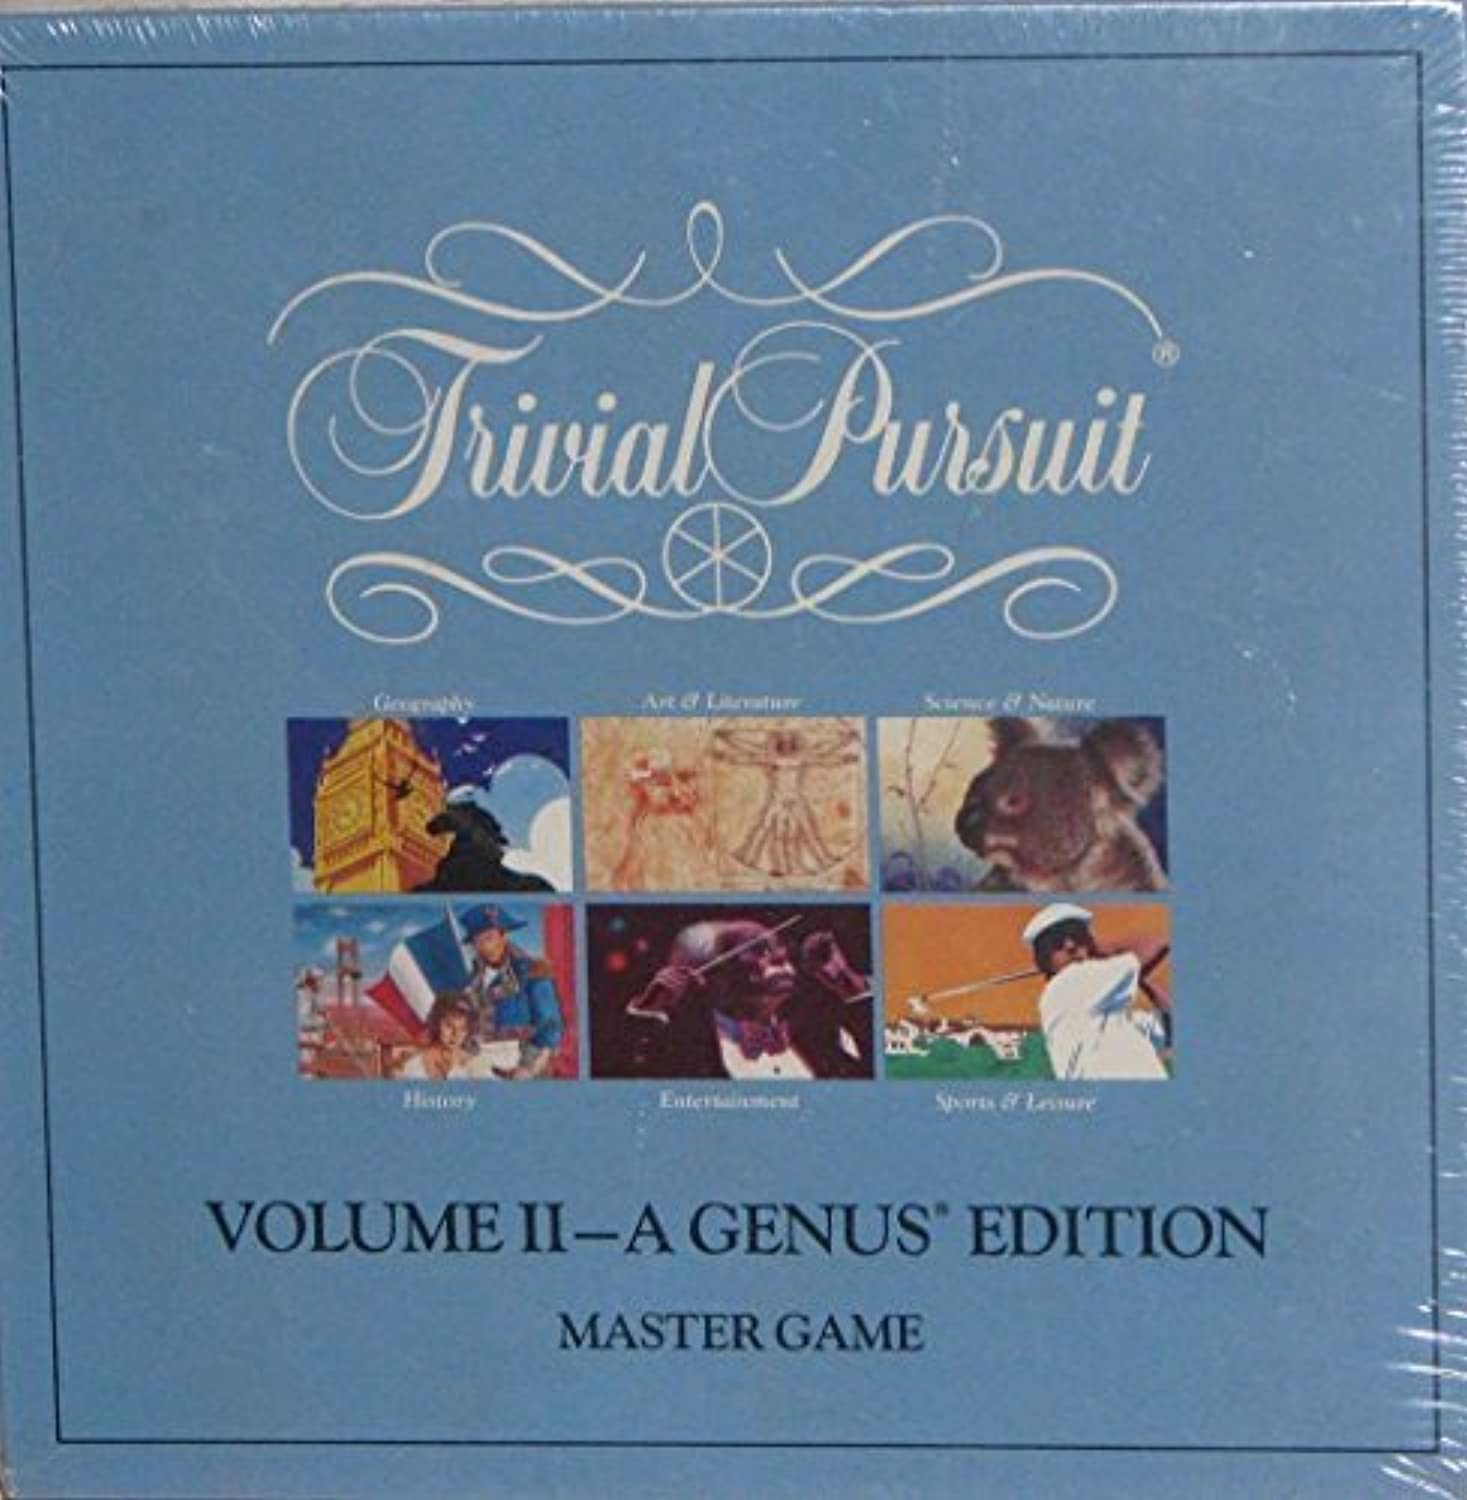 Trivial Pursuit Volume II  A Genus Edition, Master Game by Trivial Pursuit